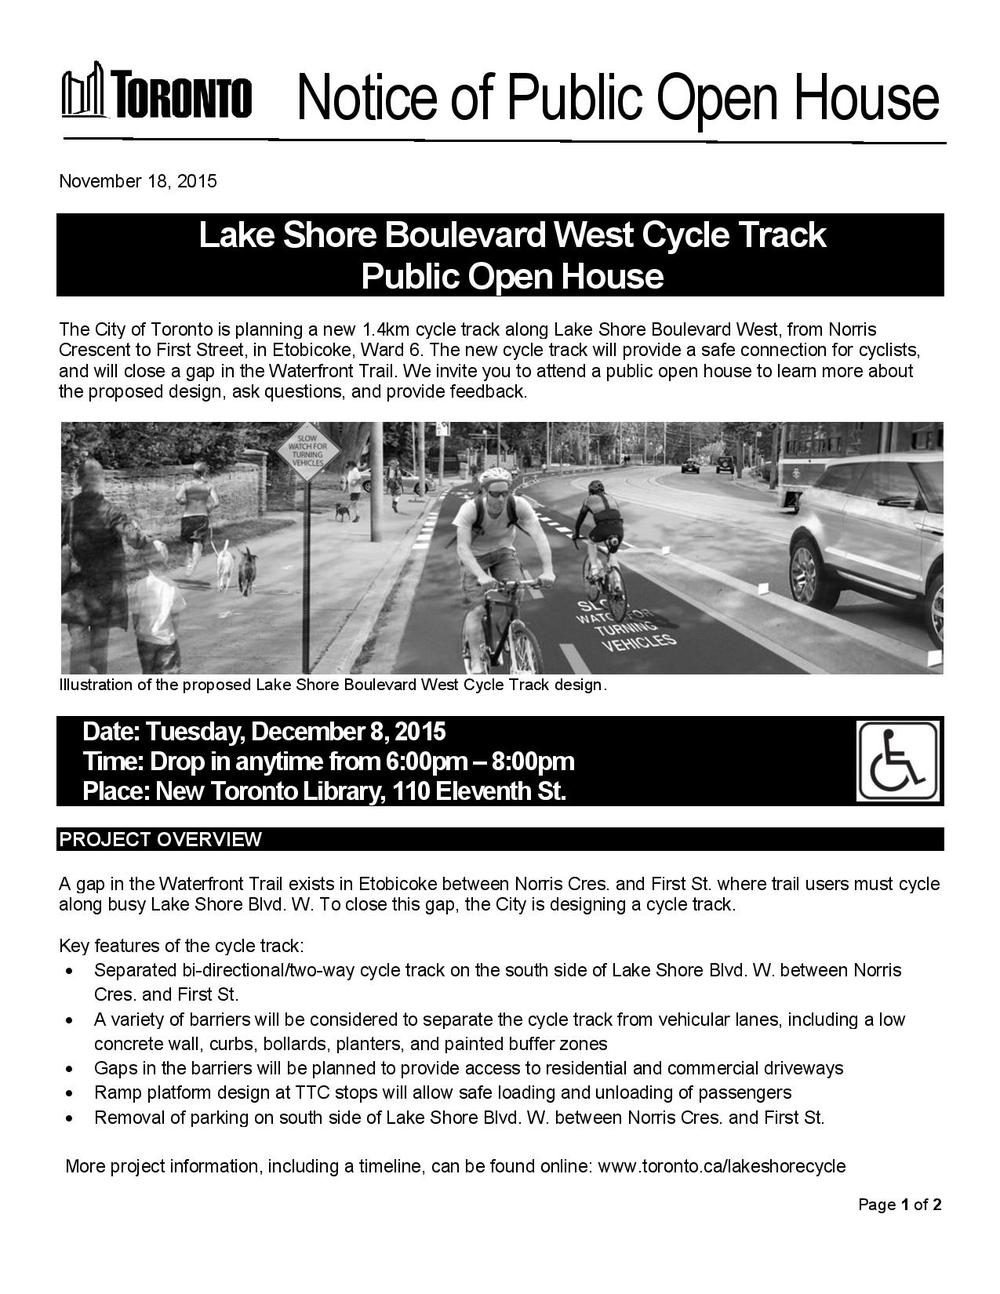 Lake Shore Cycle Track Public Meeting Notice_2015_Final-page-001.jpg